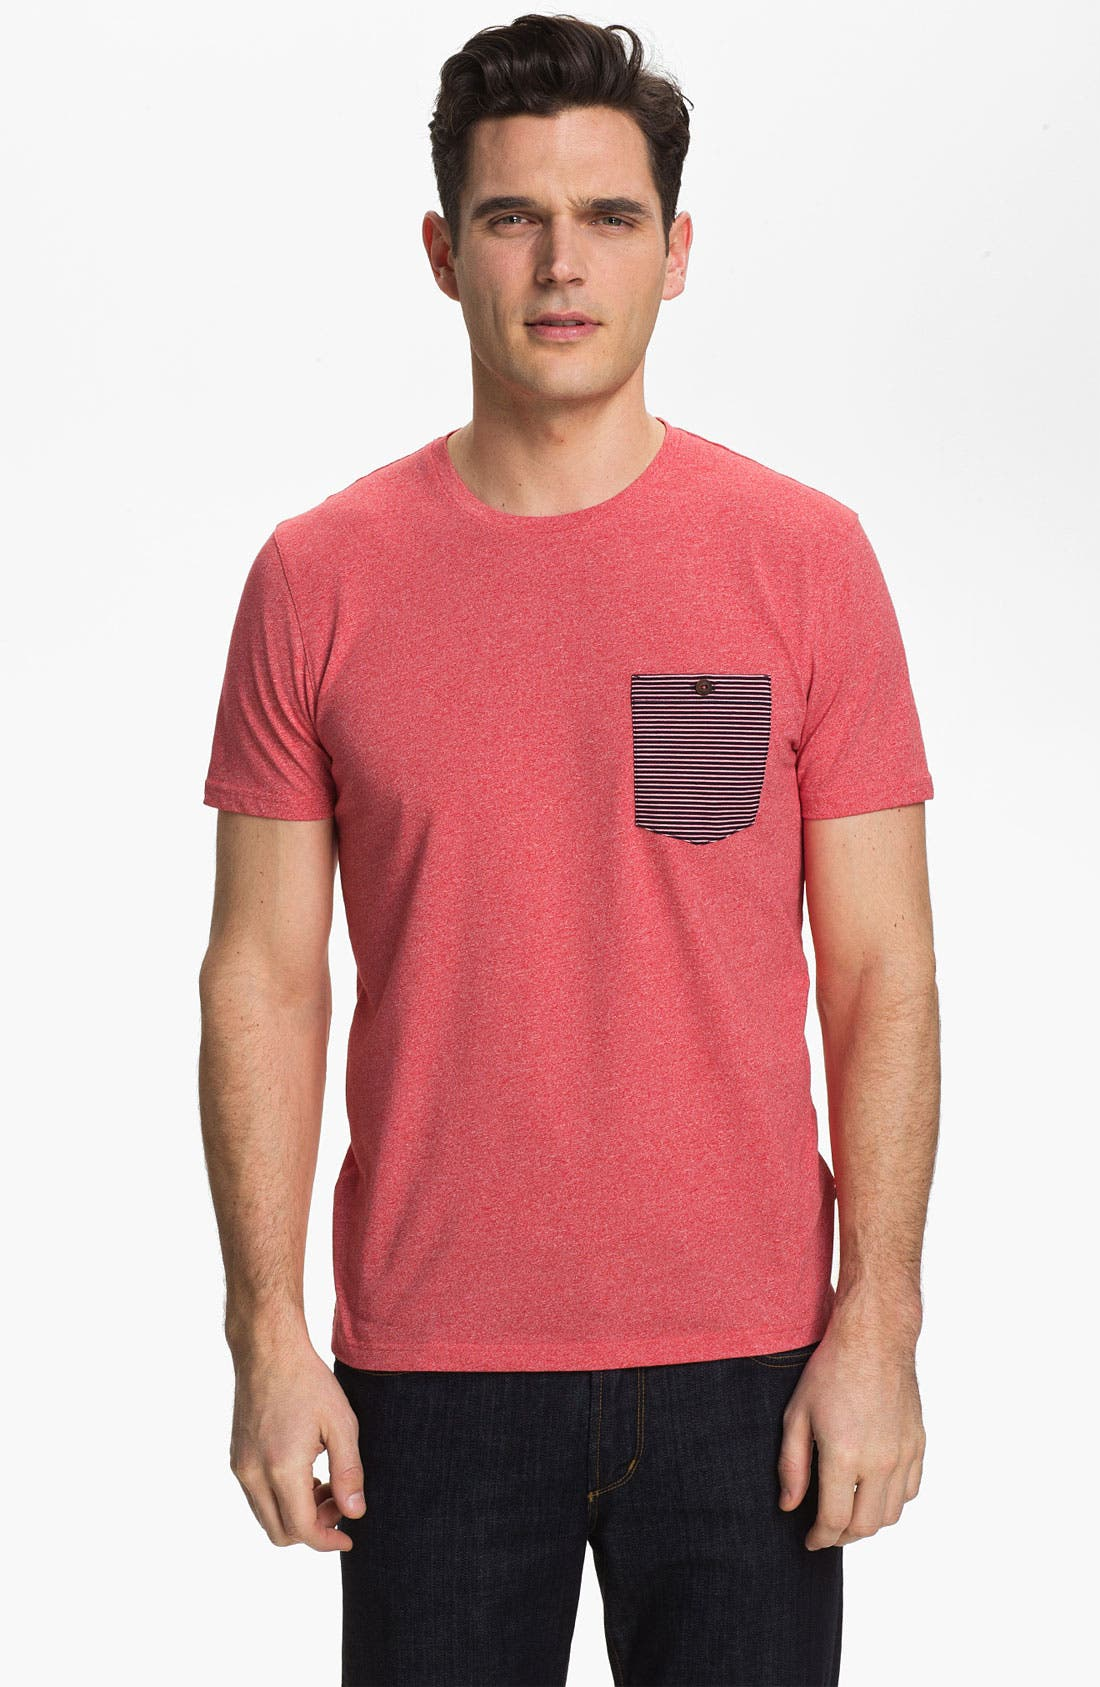 Alternate Image 1 Selected - Ted Baker London 'Driftin' T-Shirt